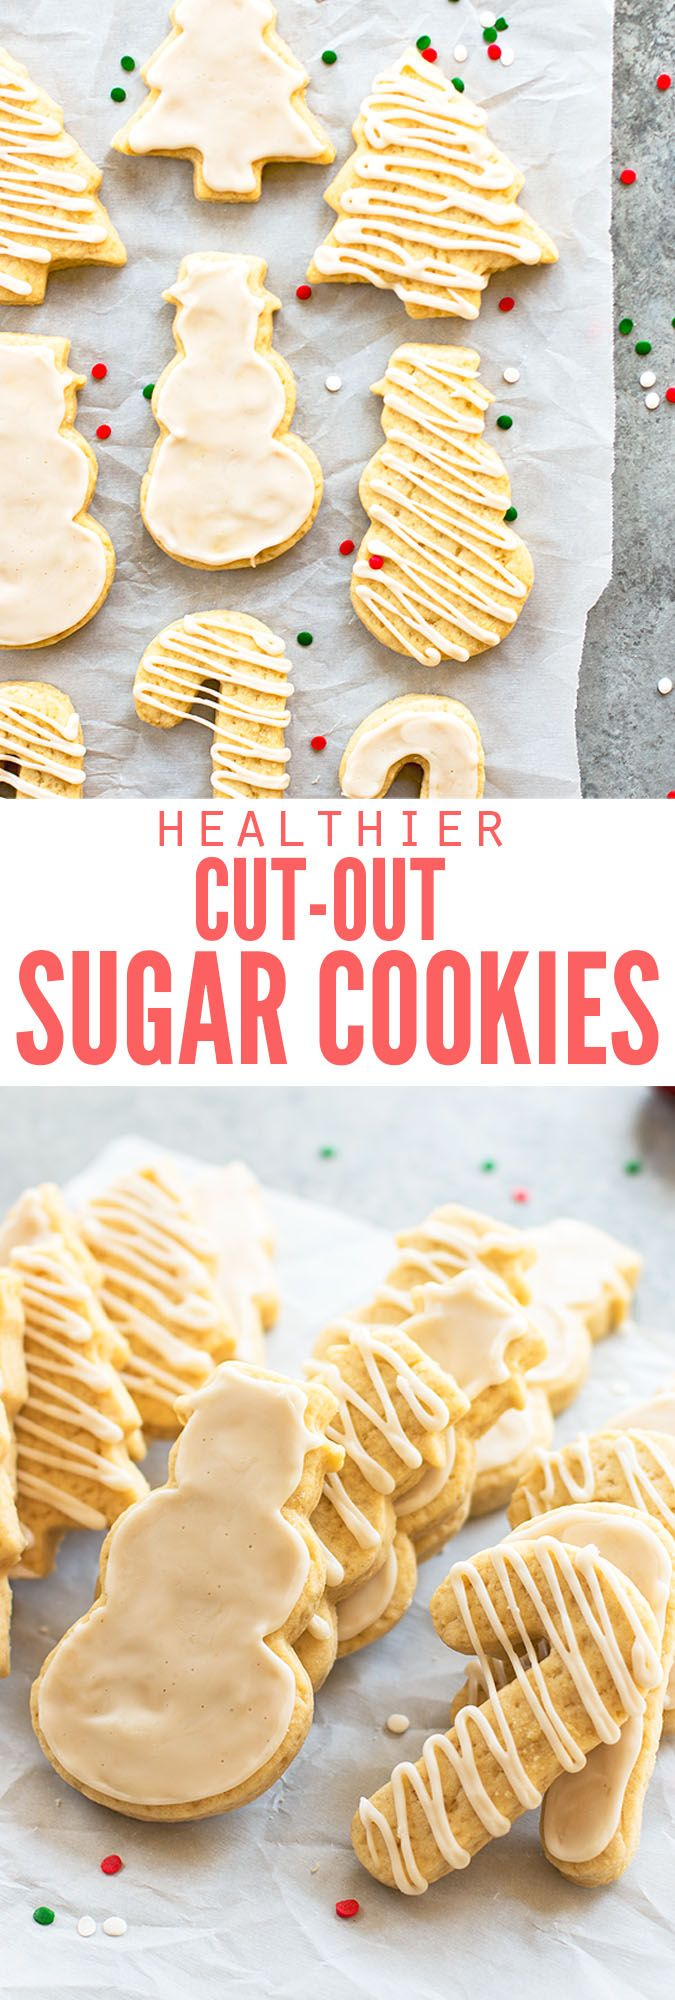 Healthier Sugar Cookie Recipe - Don't Waste the Crumbs